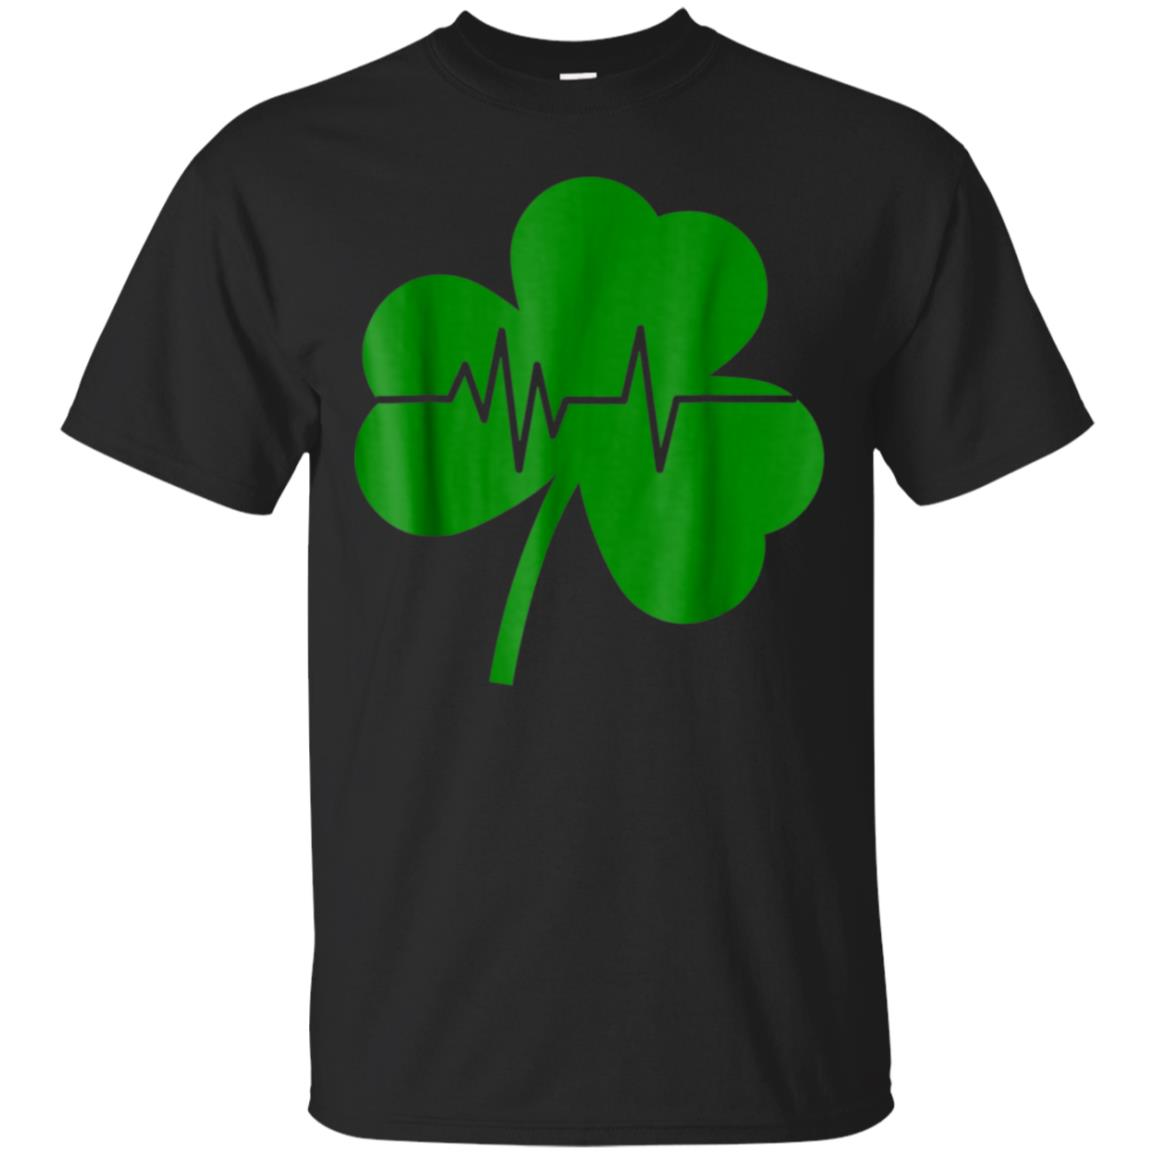 Irish Shamrock Heartbeat St Patrick's Day T-Shirt 99promocode